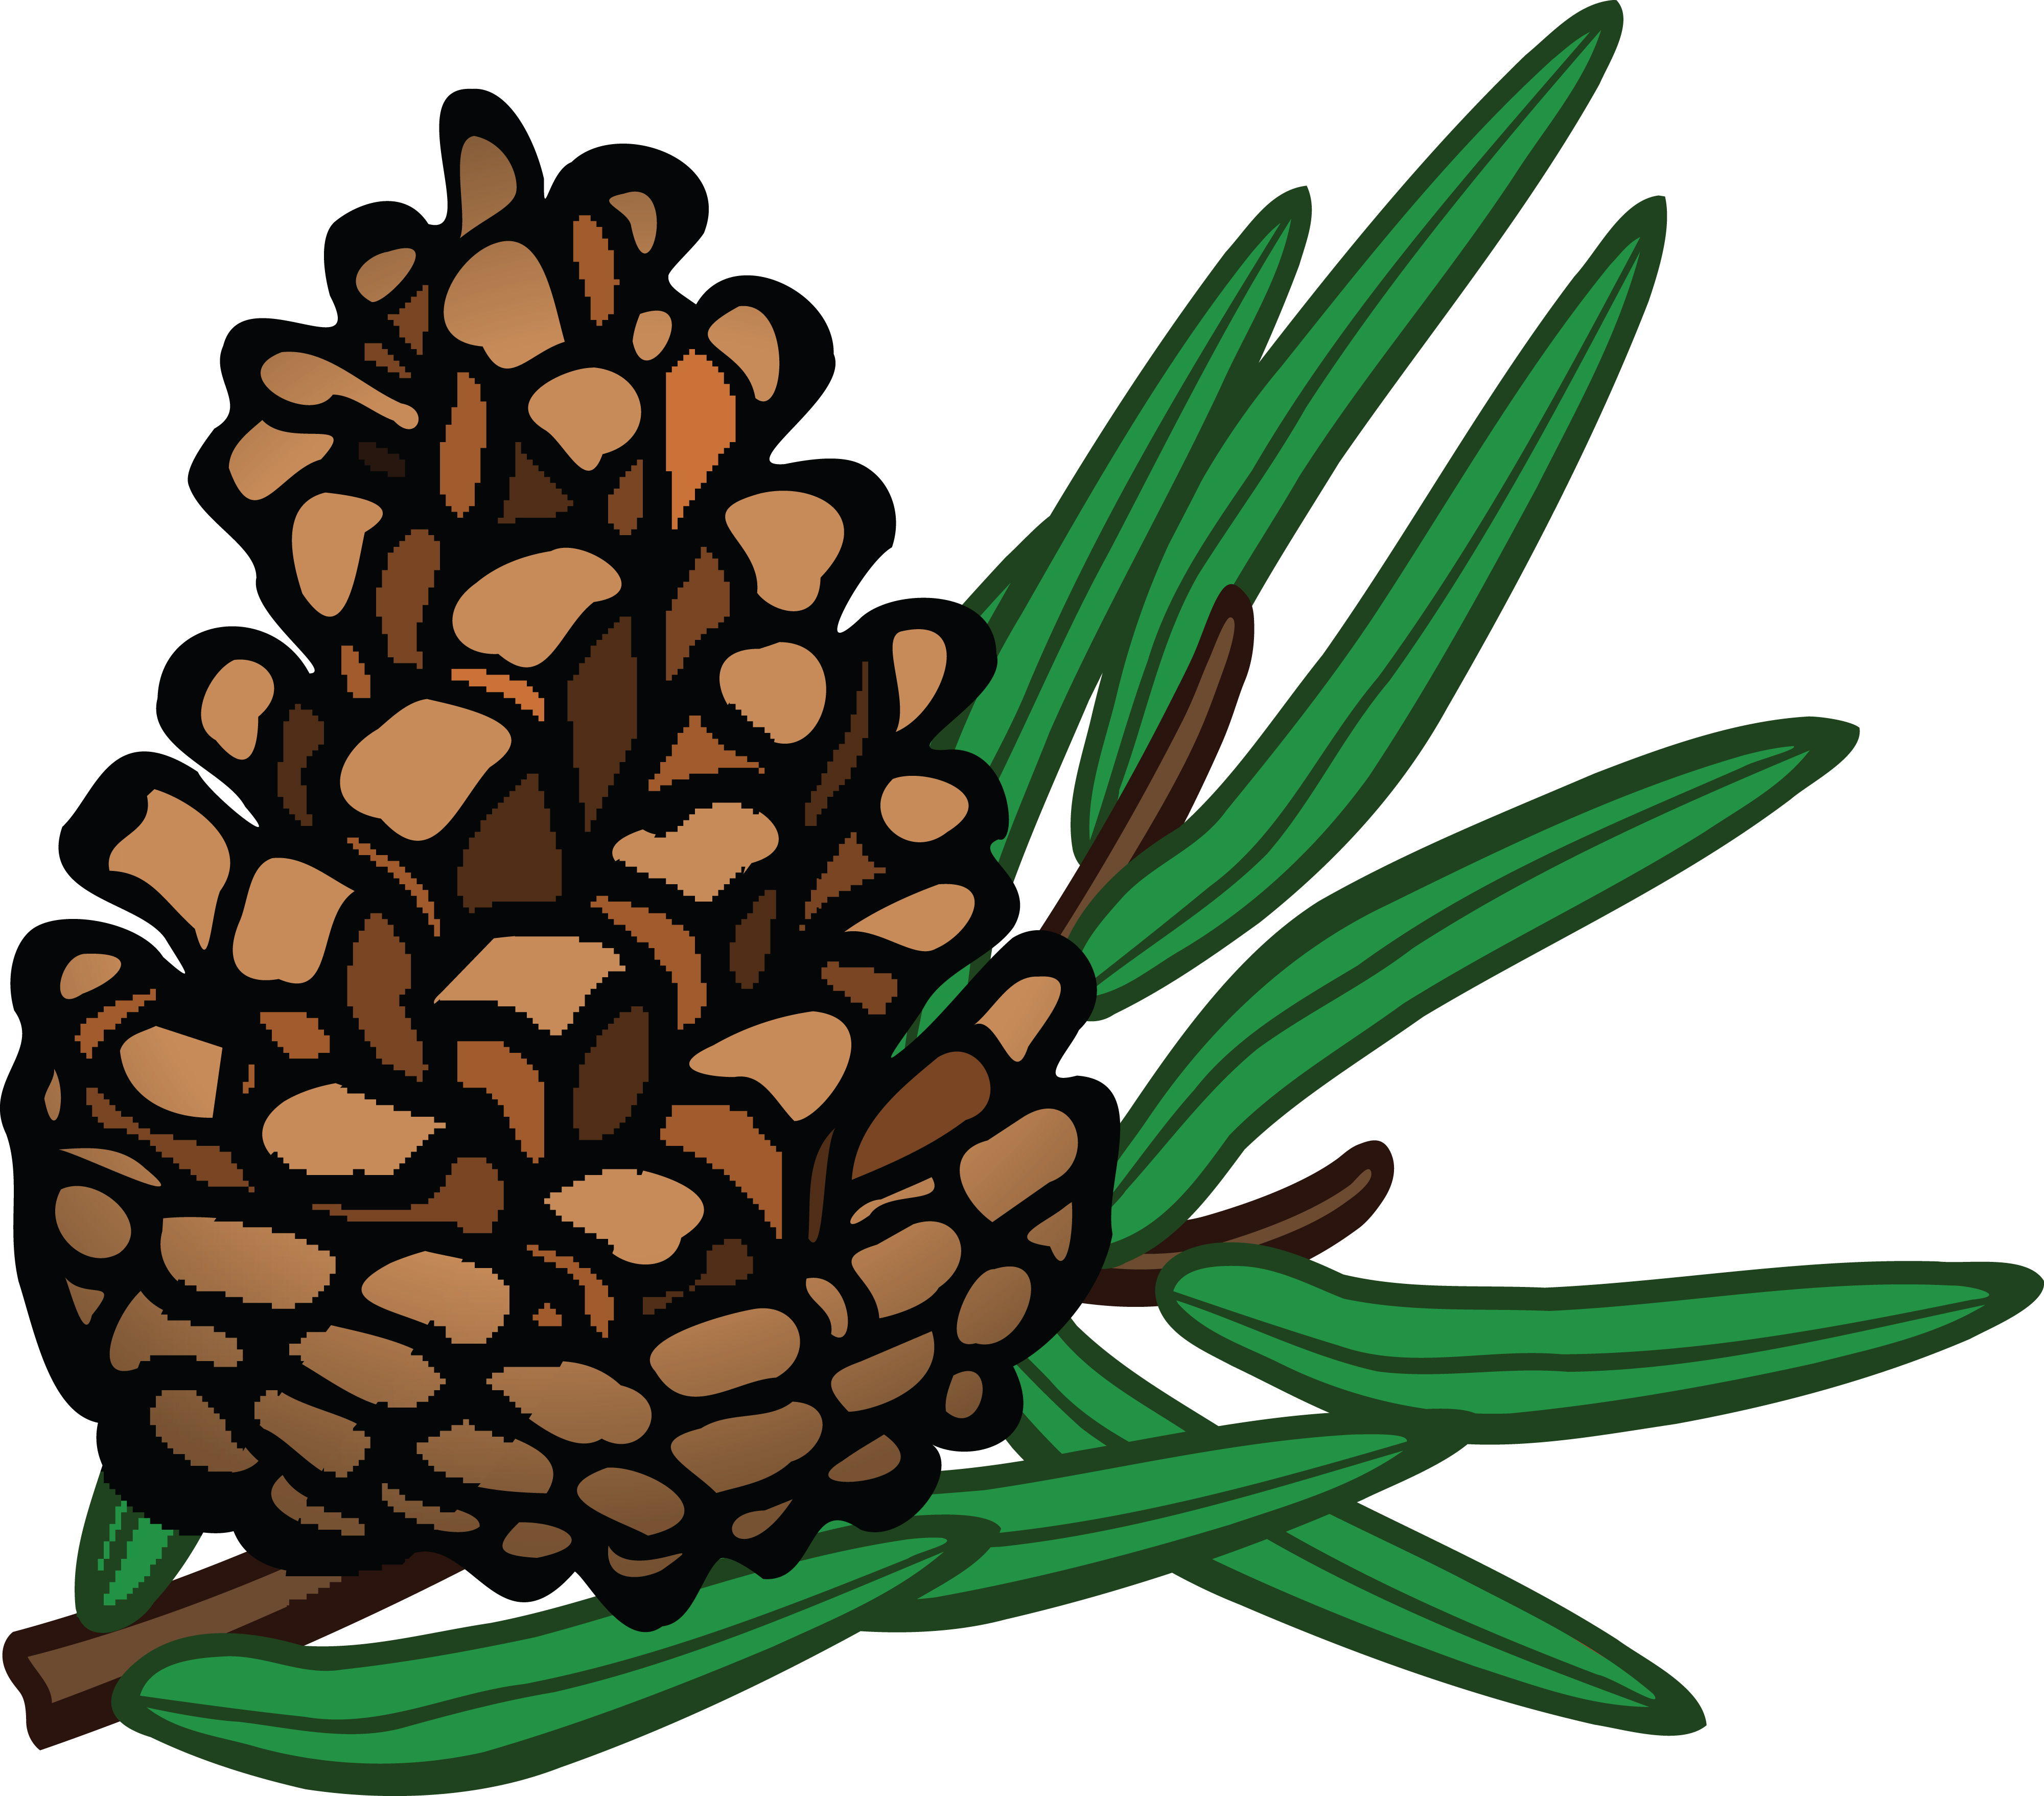 191 Pinecone free clipart.